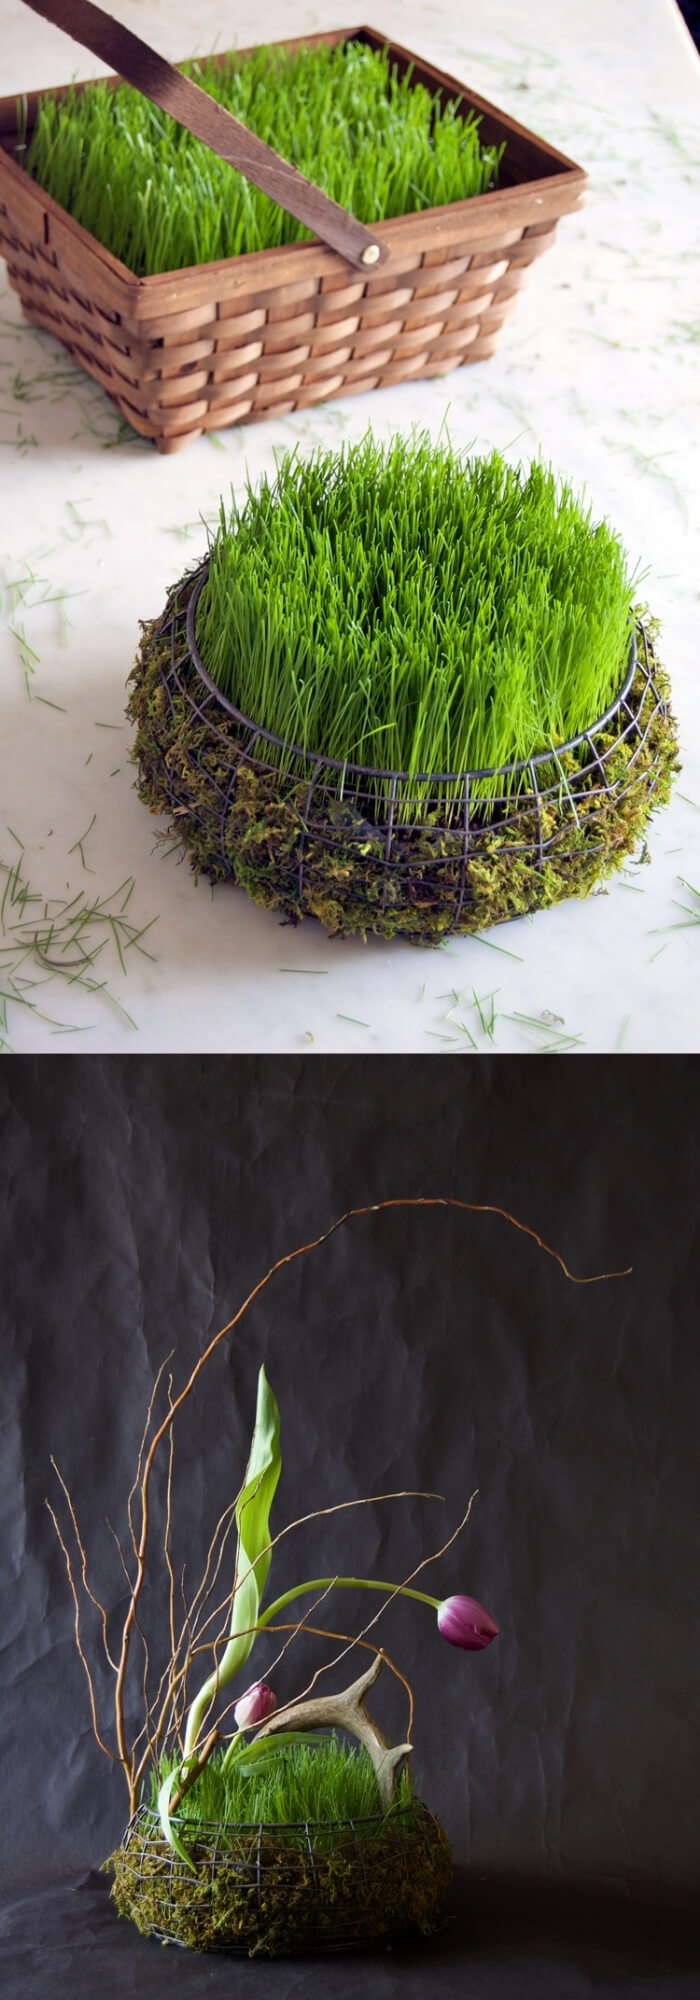 Easter basket filled with grass in 5 days | Creative Easter Garden Projects & Ideas Your Kids Will Love